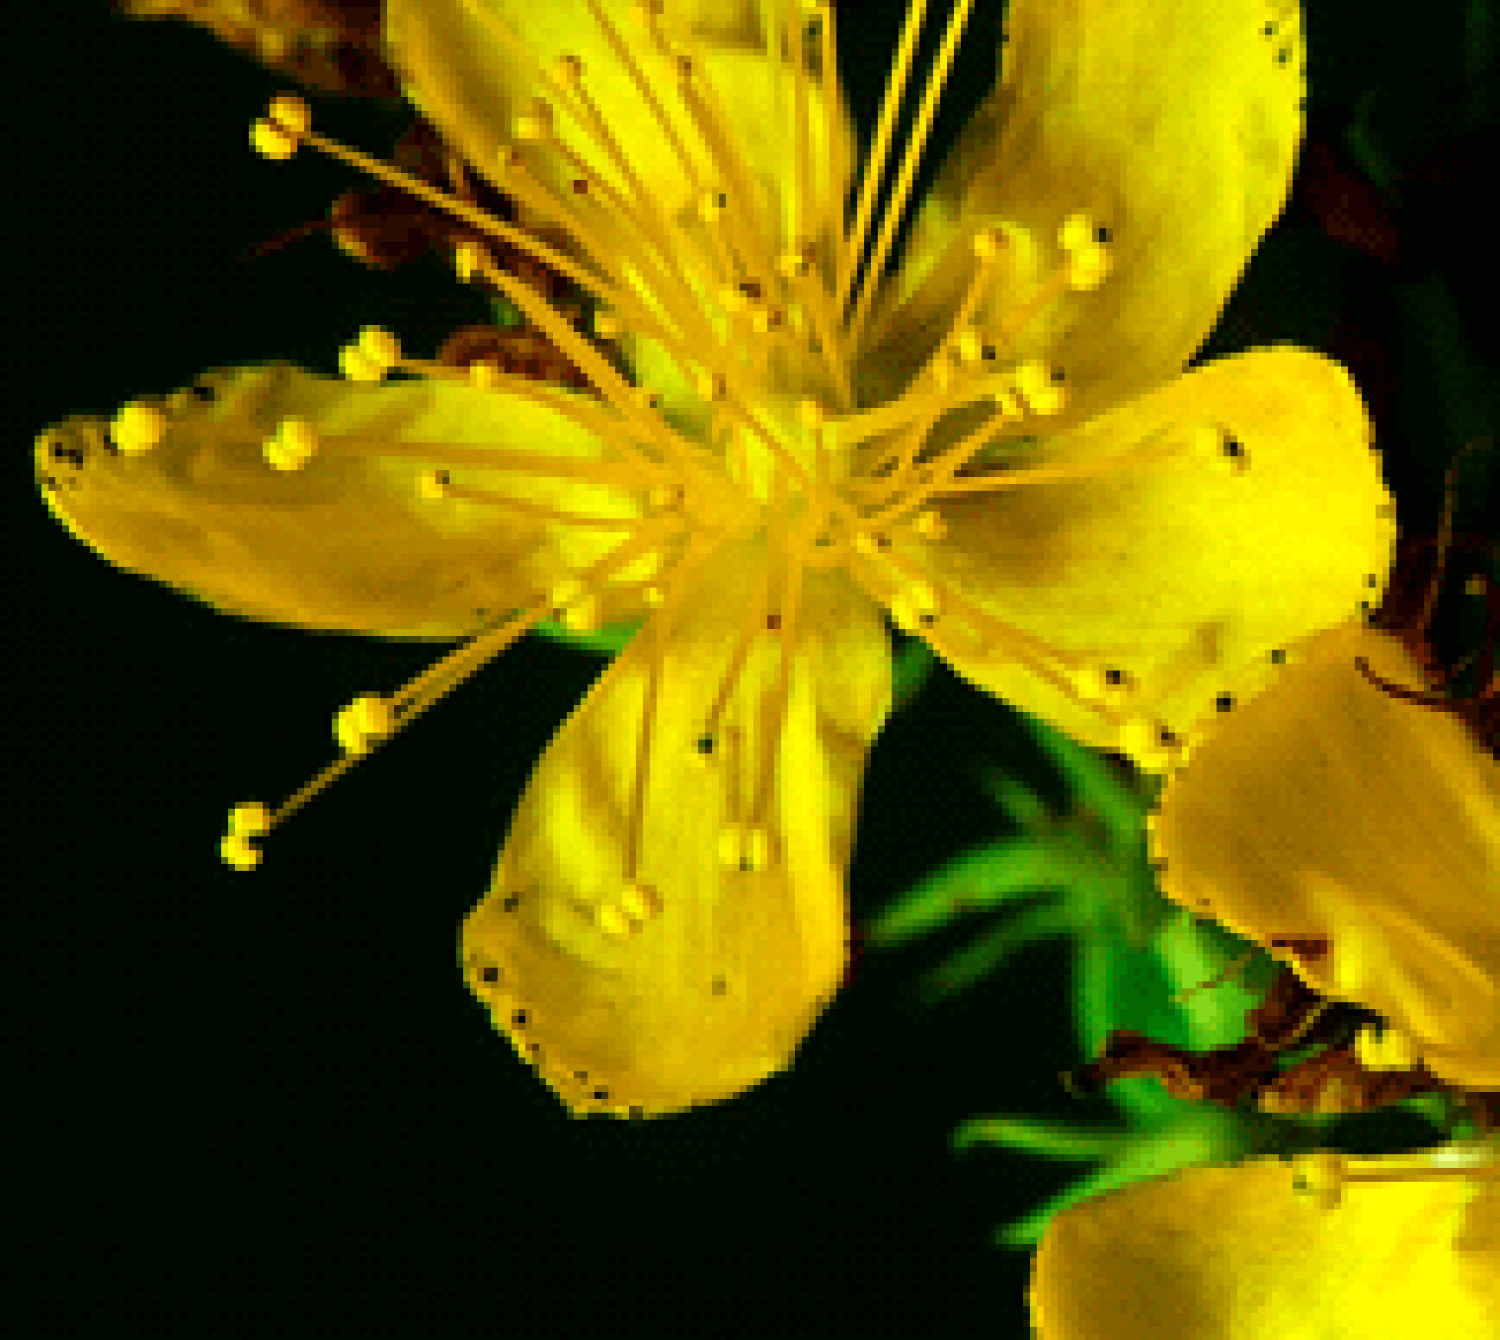 st john s wort Learn the uses, health benefits, and possible side effects of st john's wort, an herb with a long history of use for conditions like depression.